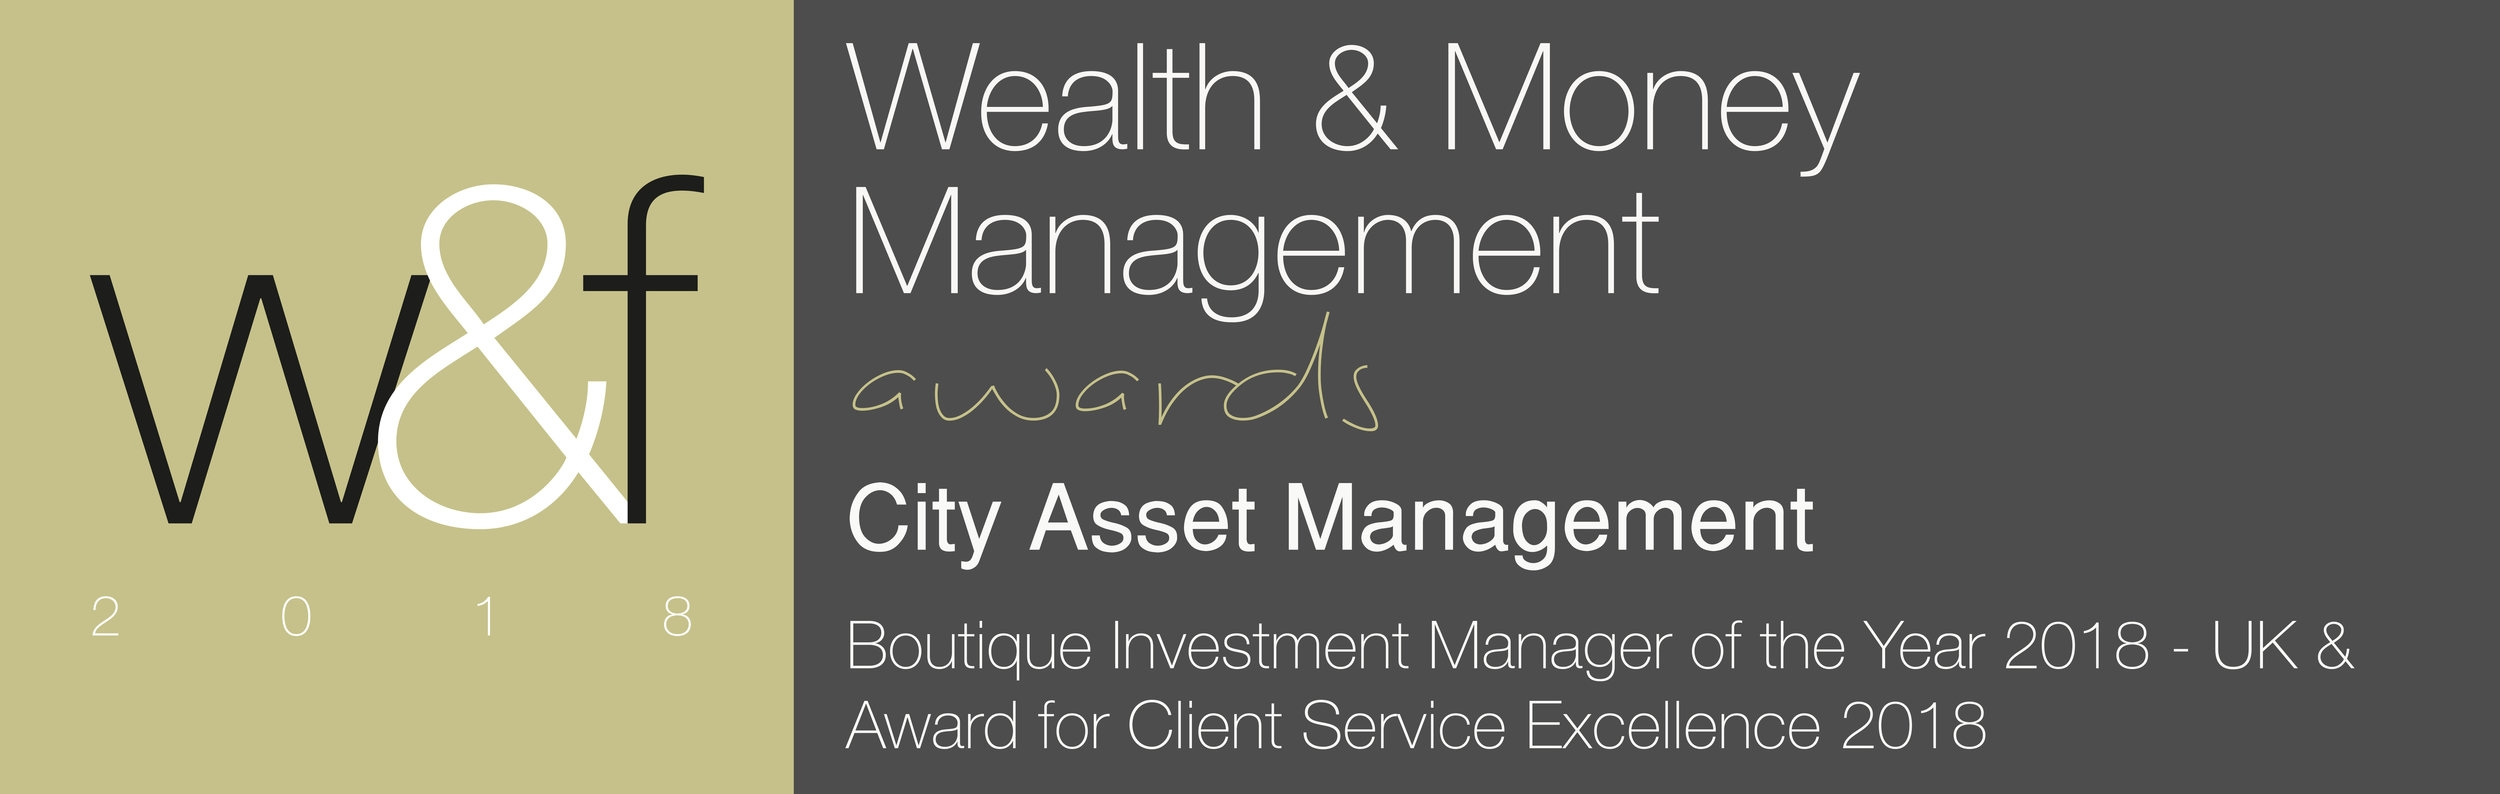 Wealth & Money Management Award 2018 Best UK Boutique Investment Manager